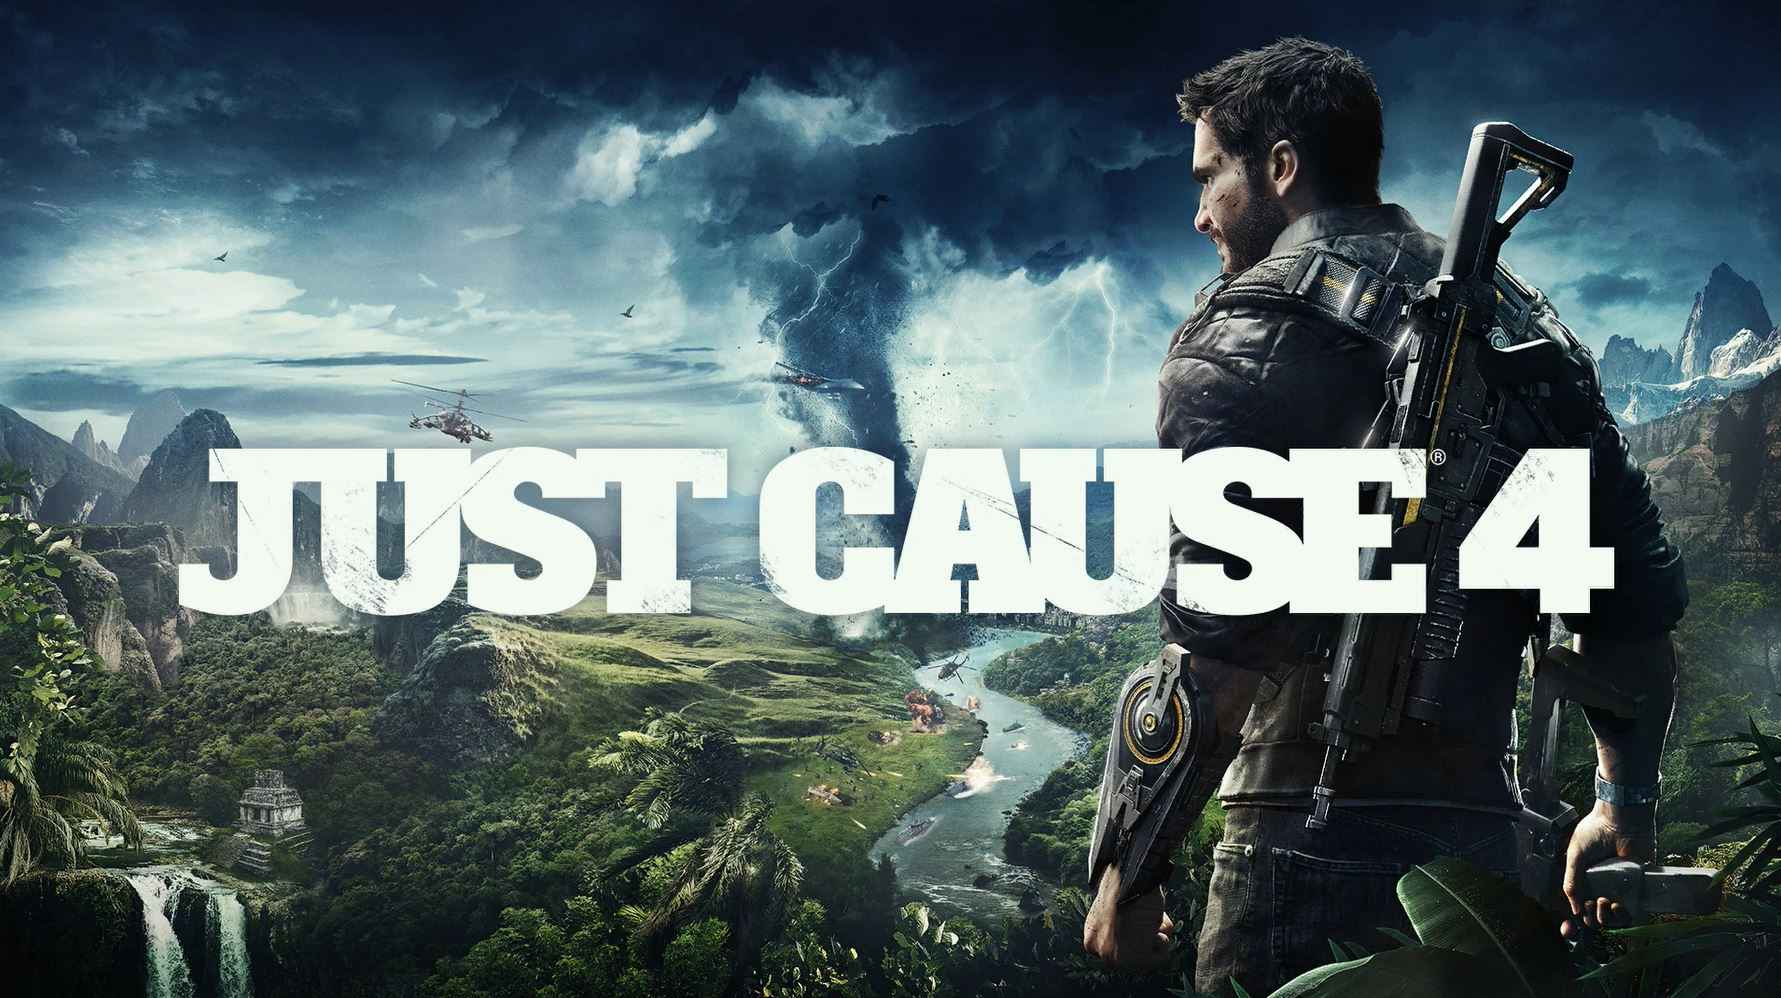 Just Cause 4 Wallpaper: PlayStation Universe